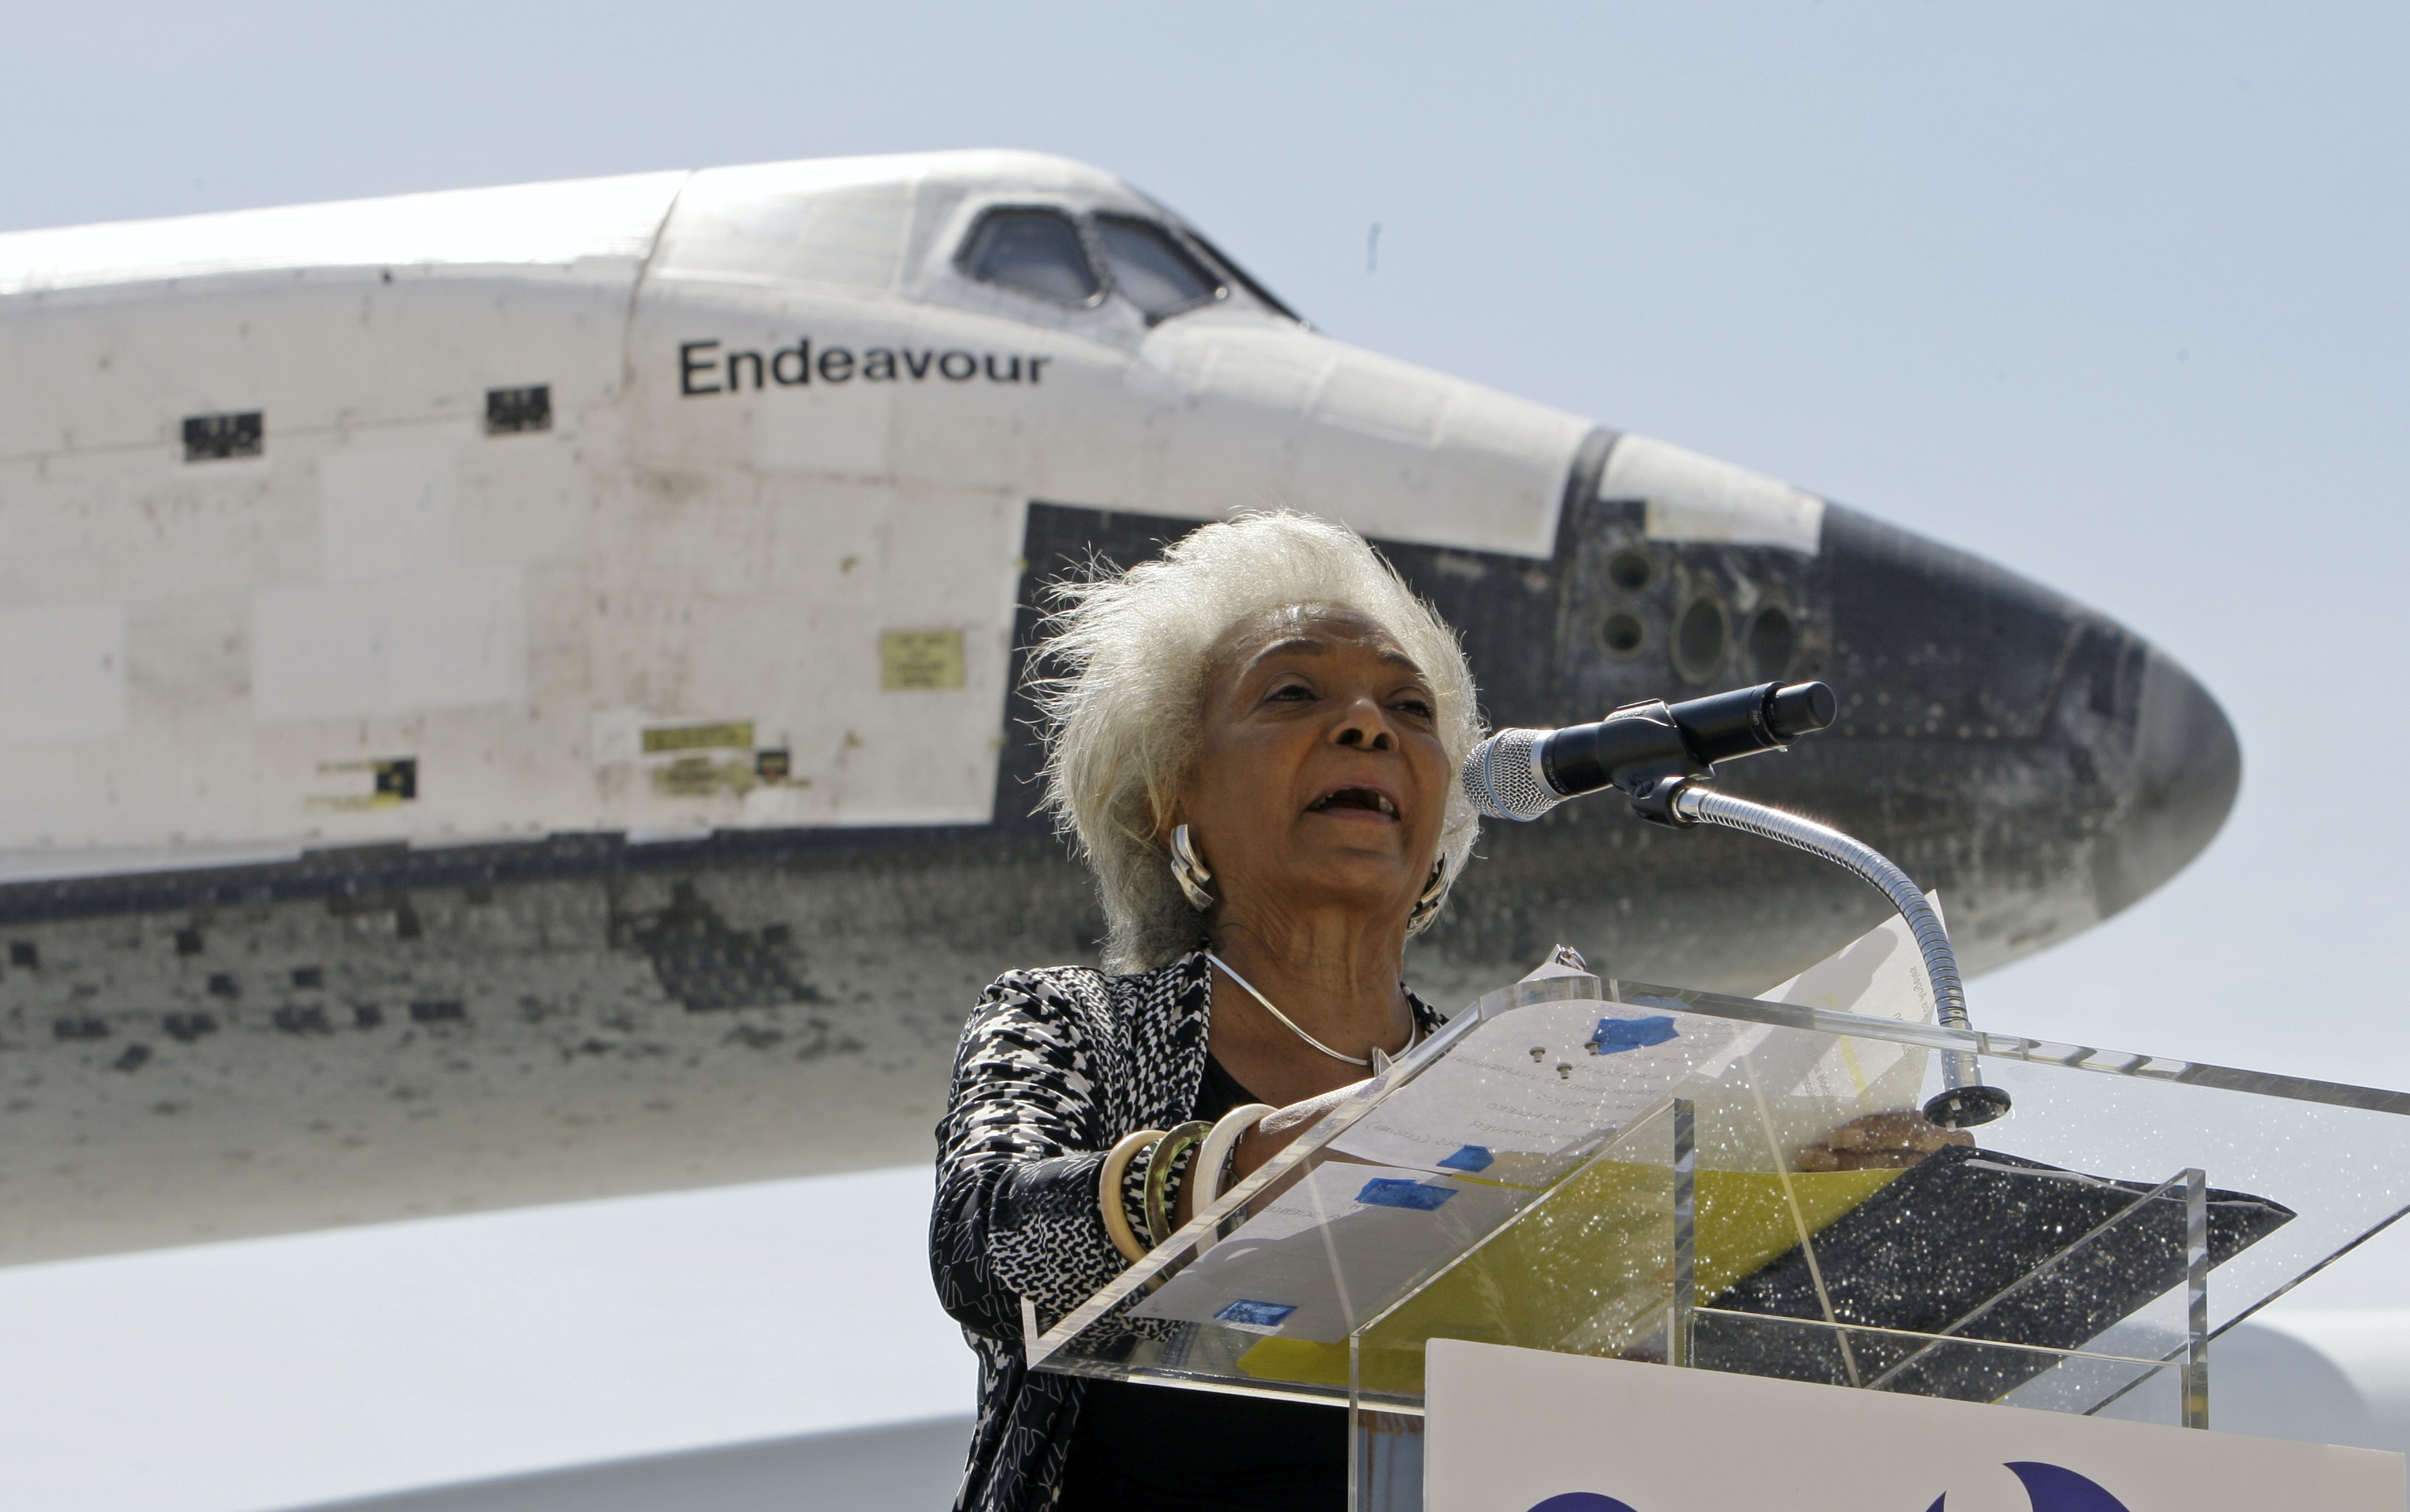 Nichelle Nichols speaks after the Space Shuttle Endeavour landed at Los Angeles International Airport Friday in September 2012